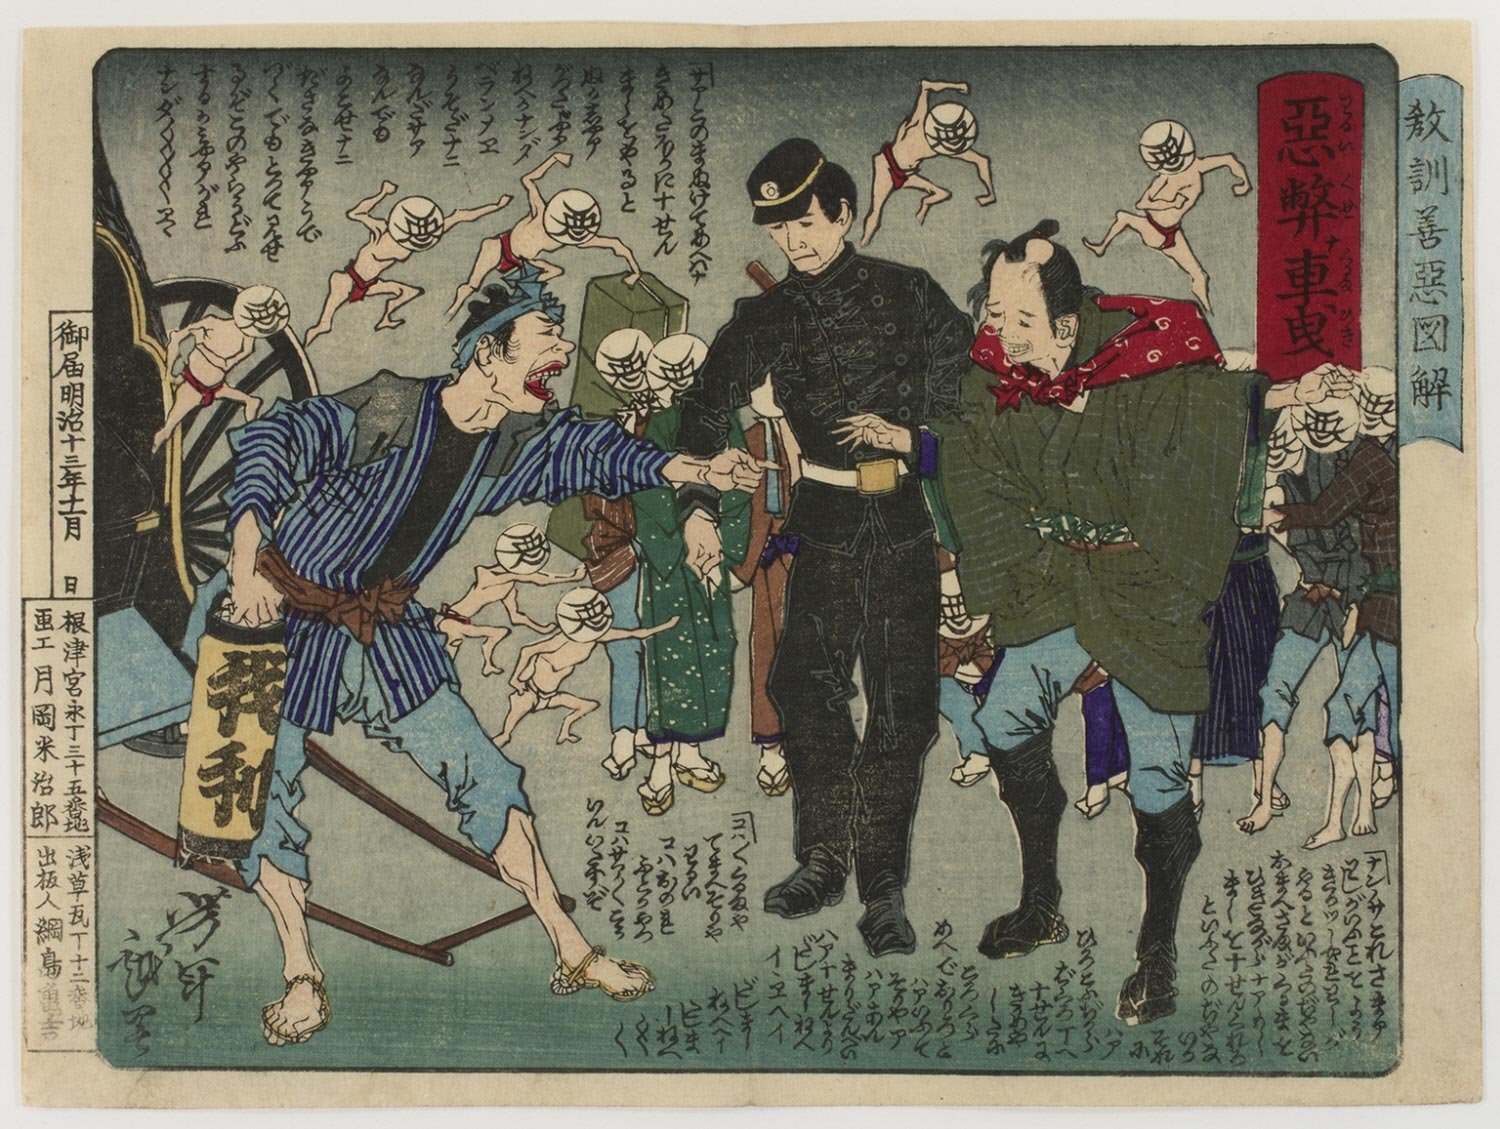 A Bad-Mannered Rickshaw Driver, from the series Moral Lessons through Pictures of Good and Evil (Kyōkun zenaku zukai)